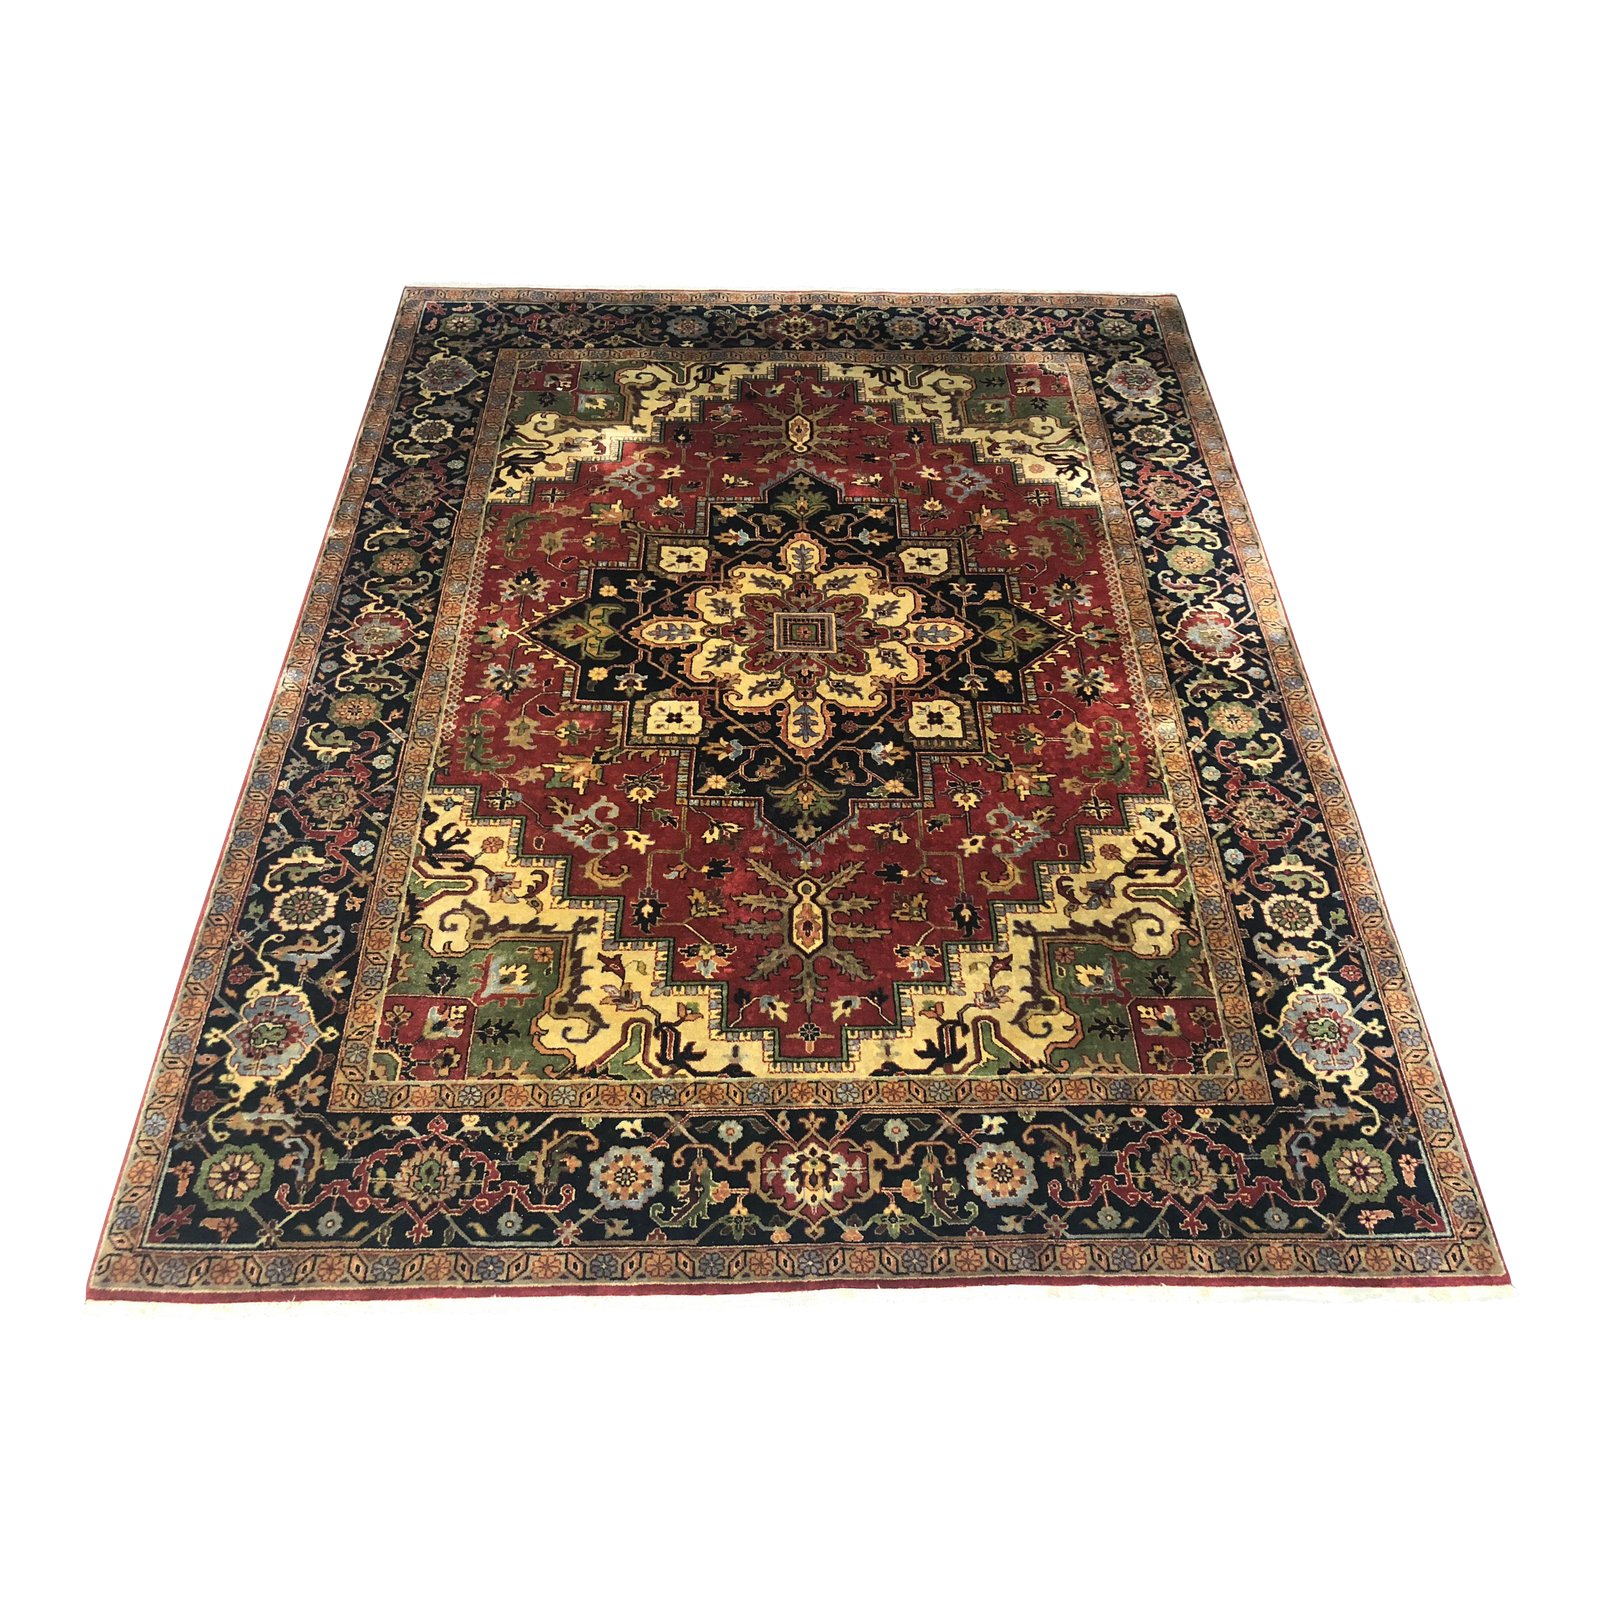 Persian Hand Knotted Wool Rug 10 8 2 Design Plus Gallery